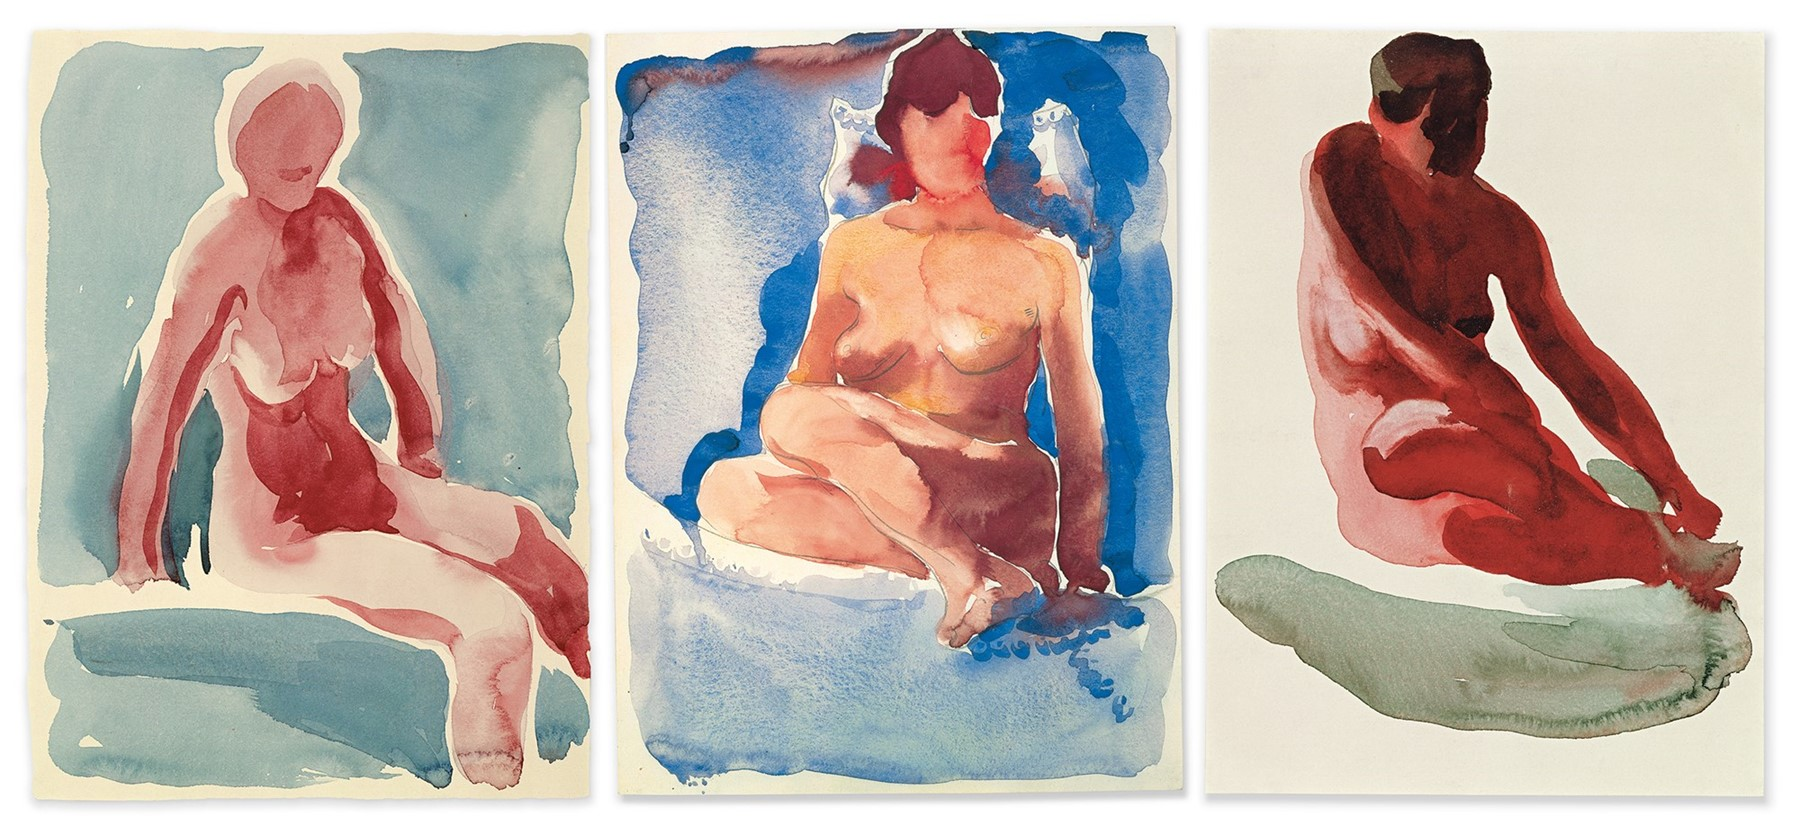 Clicking Nudes: Documenting The Journey Of Self-Love For My Body